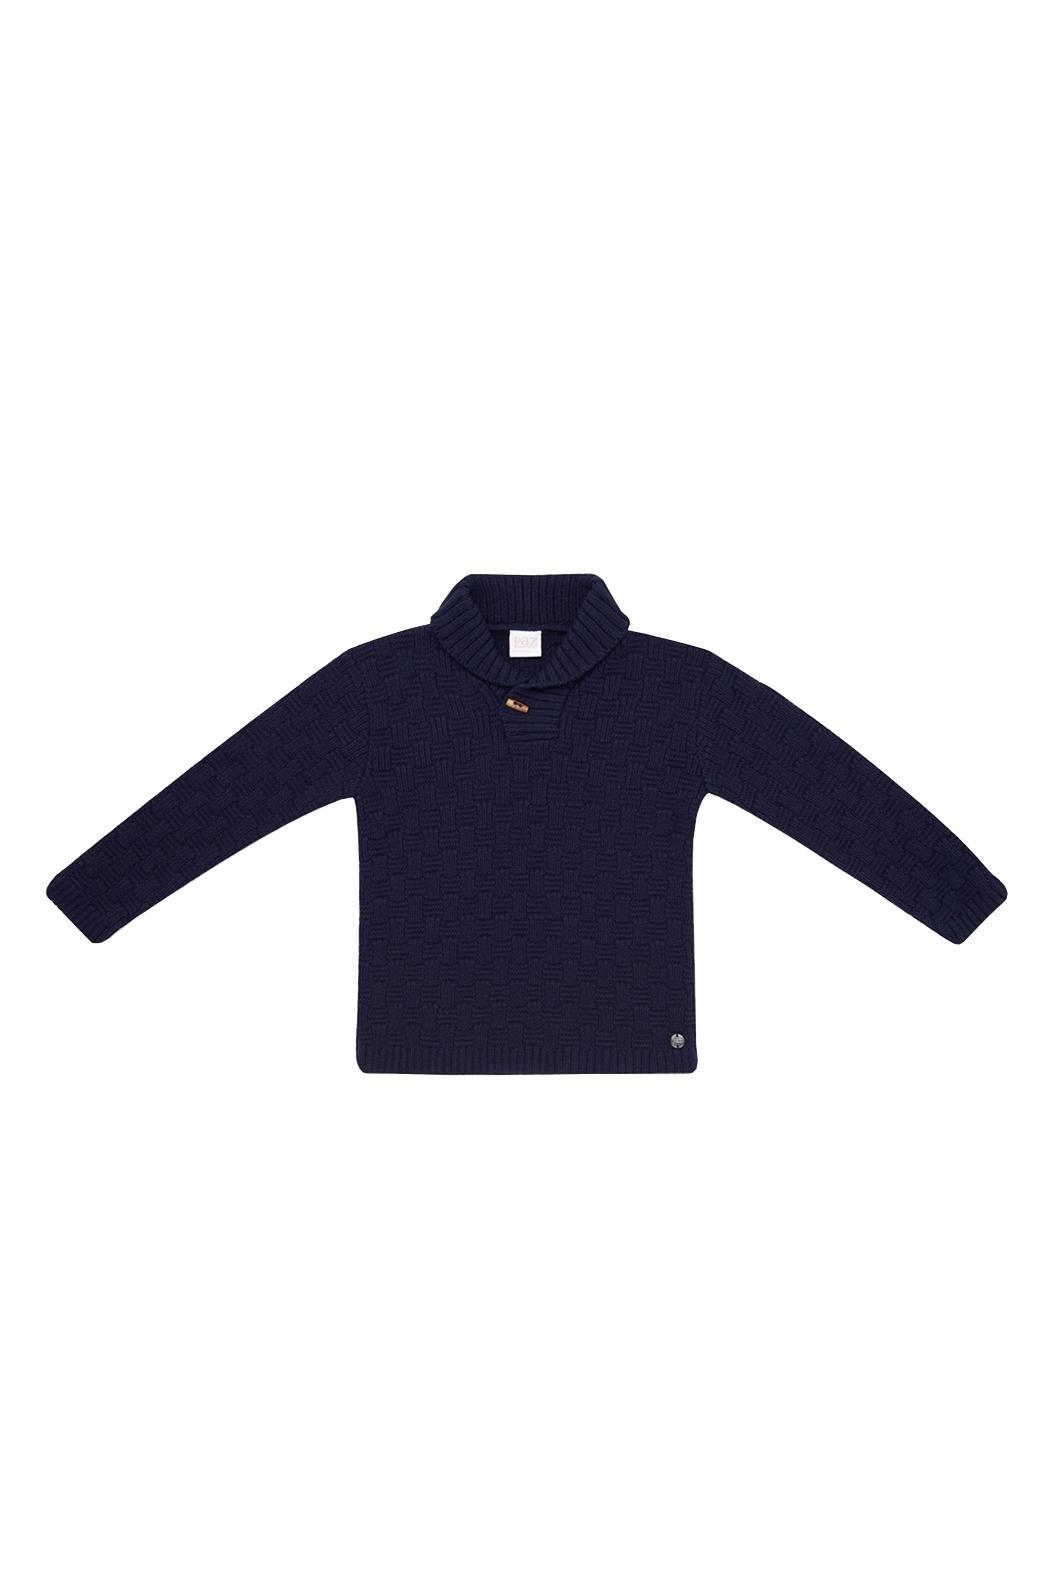 Paz Rodriguez Knitted Navy Sweater. - Front Cropped Image